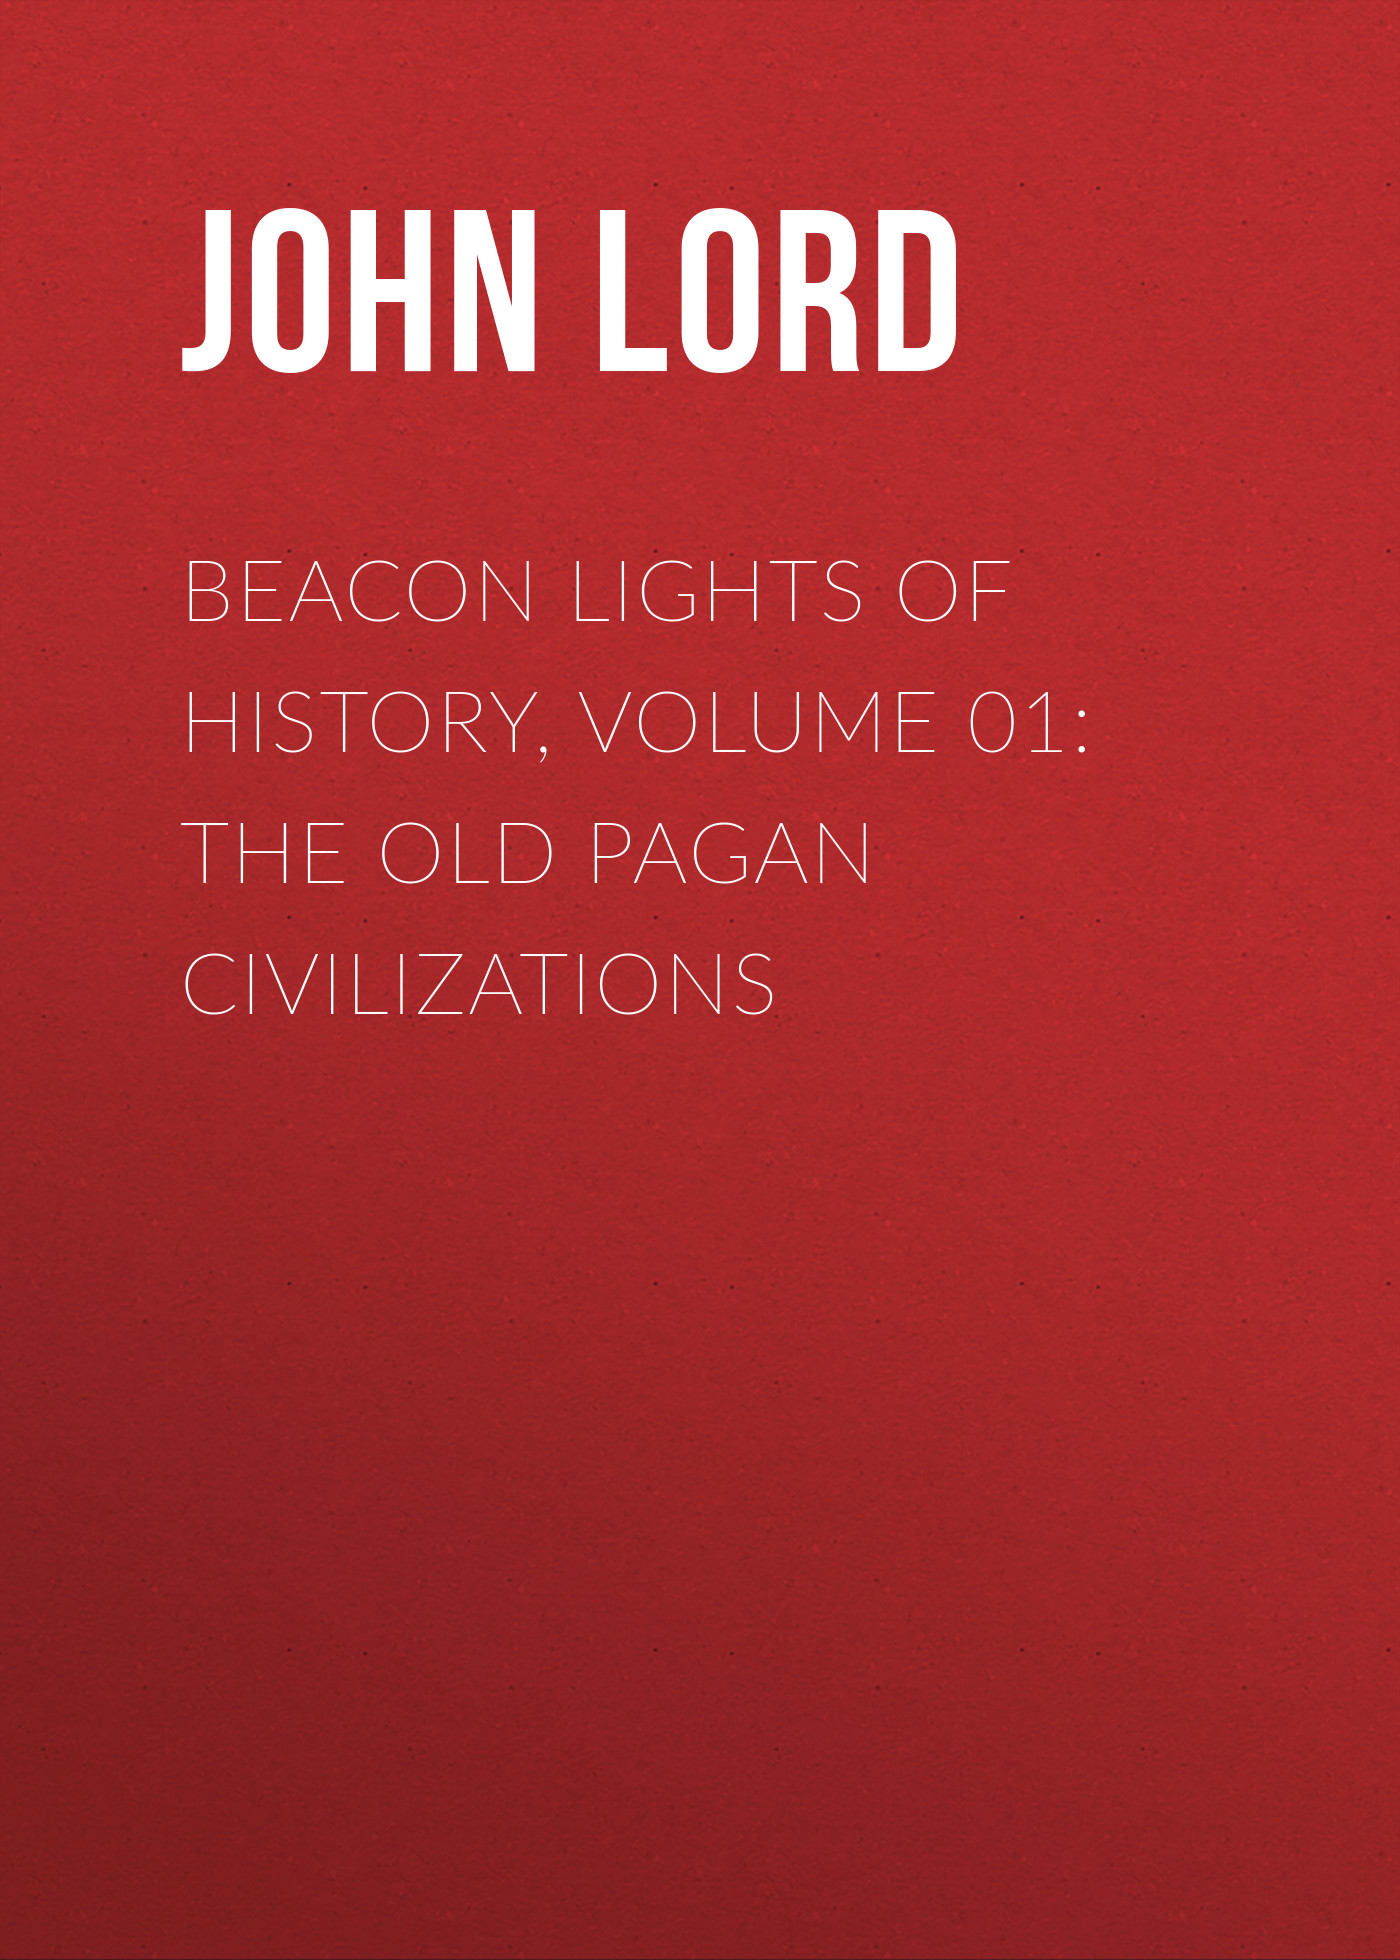 John Lord Beacon Lights of History, Volume 01: The Old Pagan Civilizations john richard green history of the english people volume 4